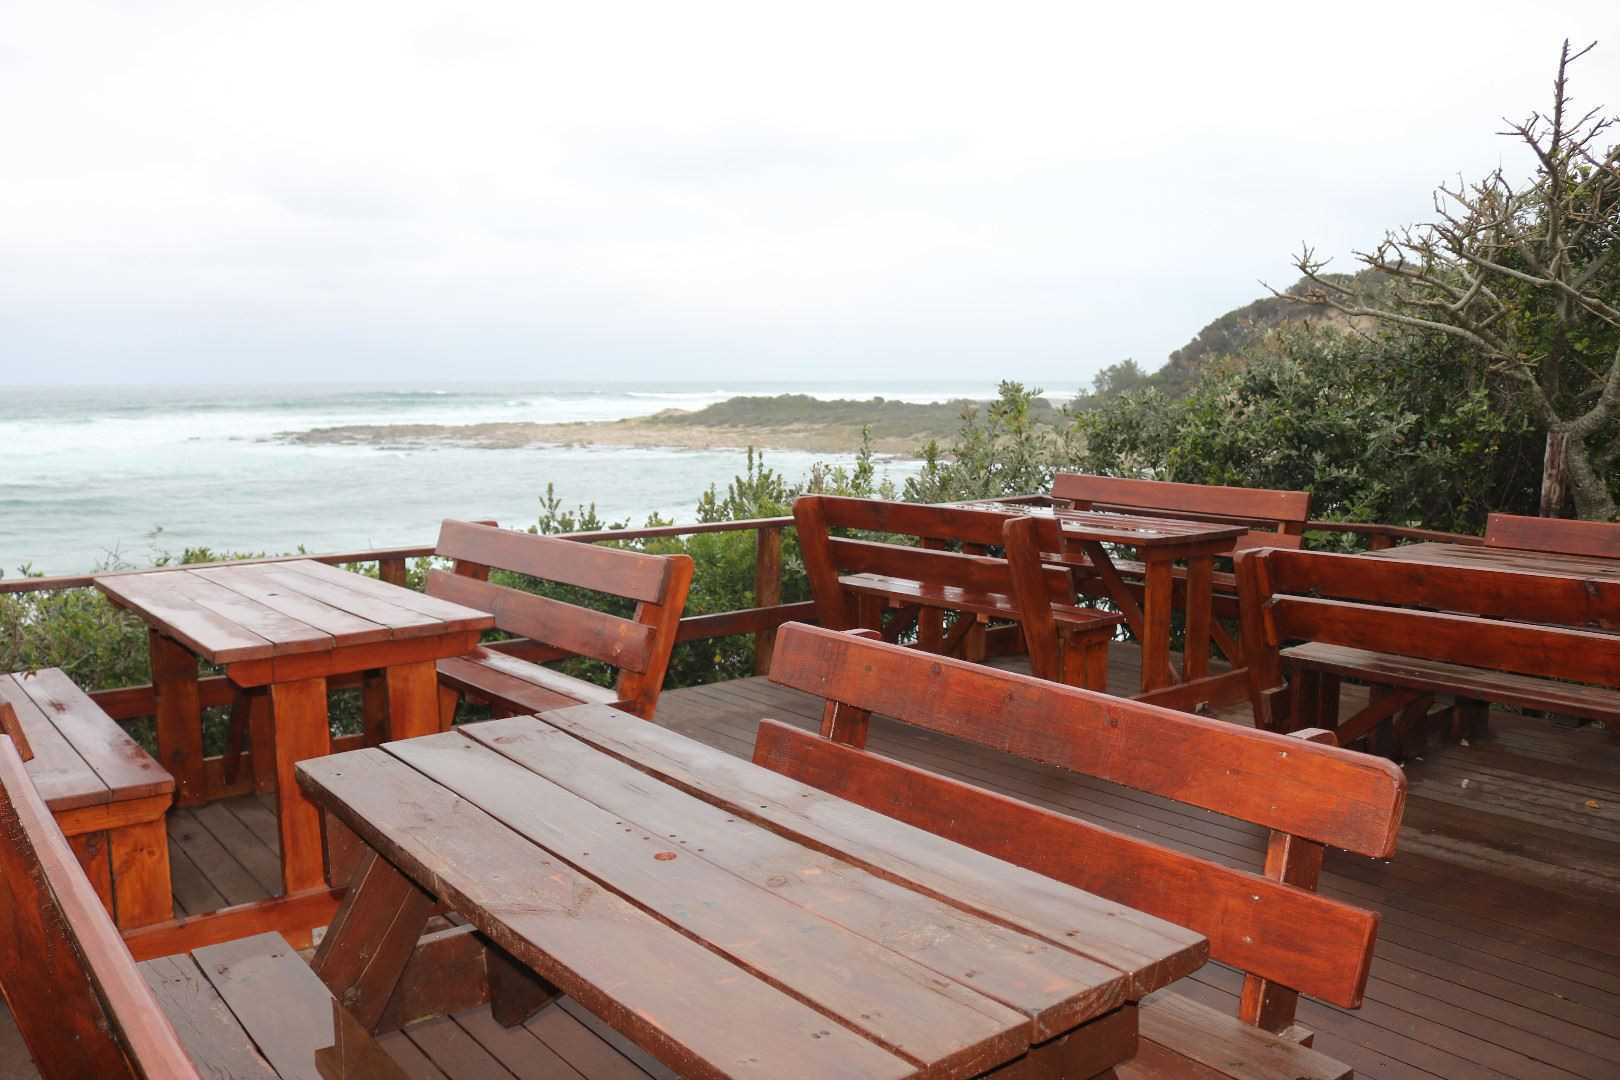 SEATING AREA OFF THE BOARDWALK